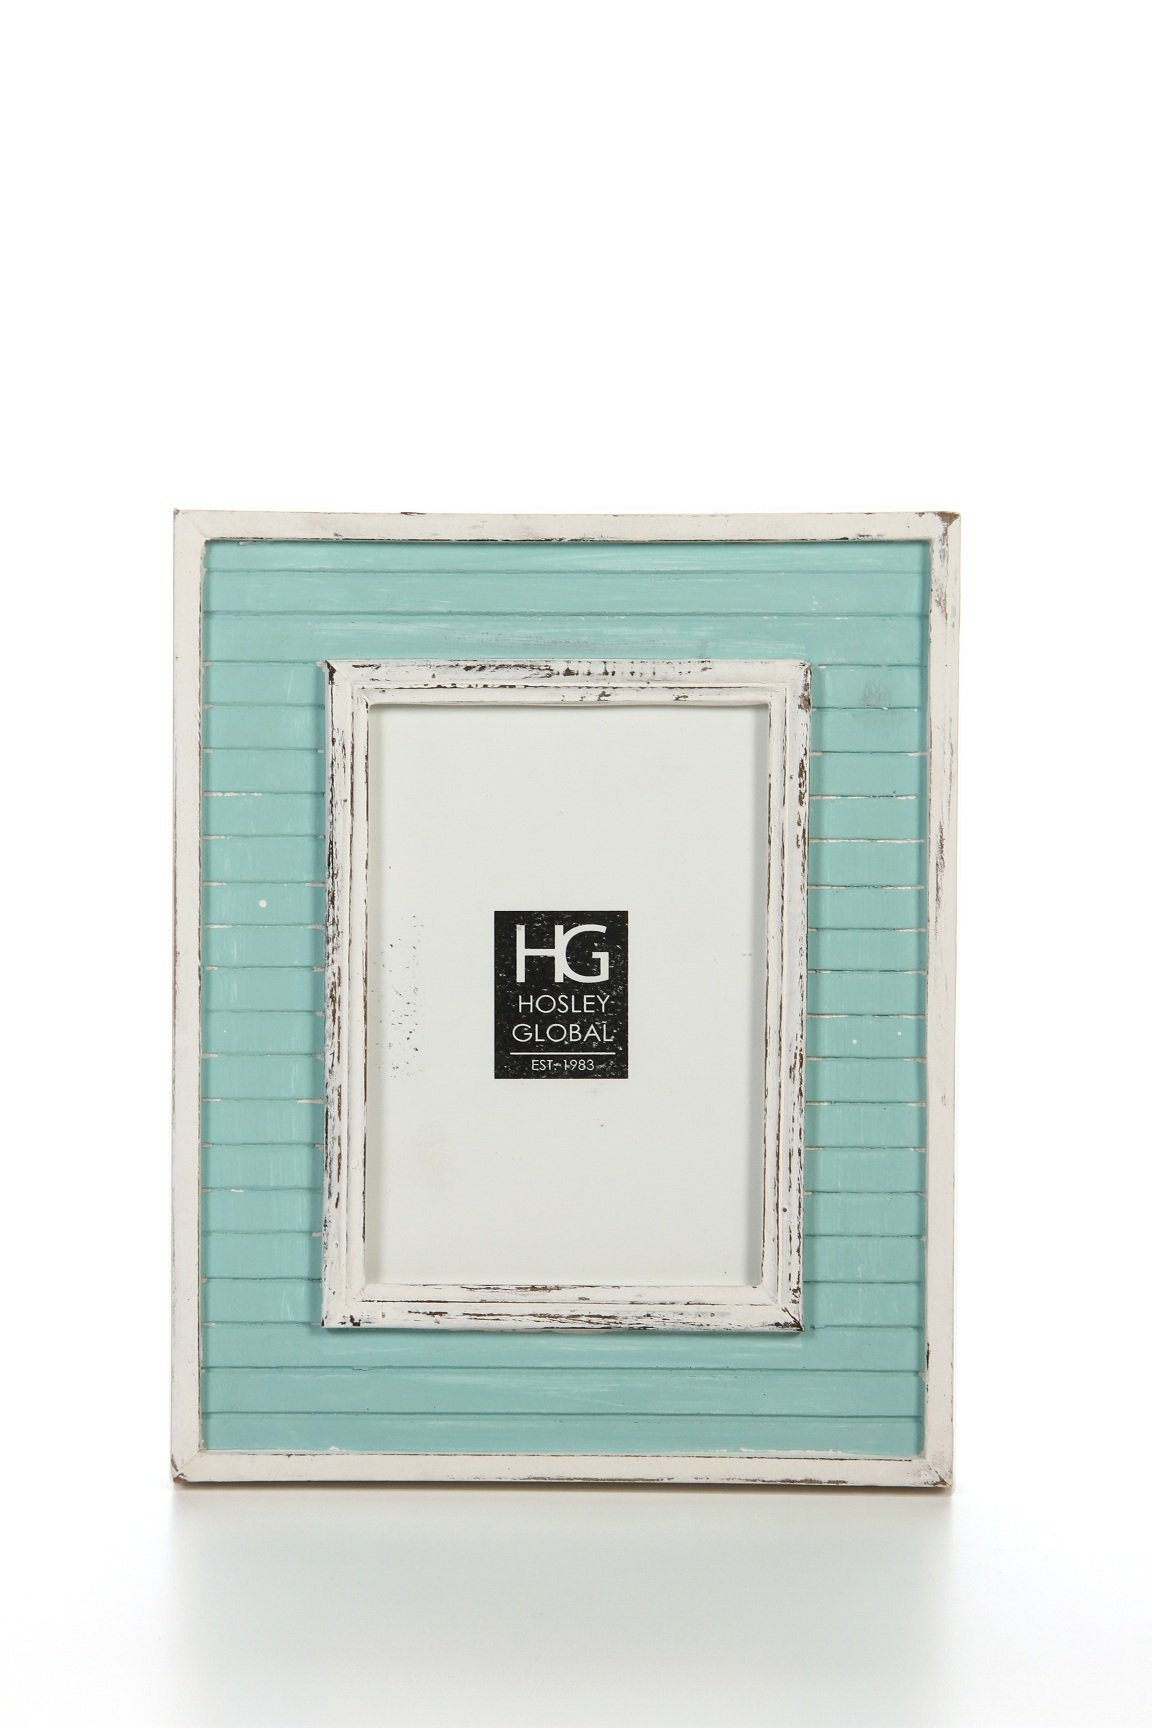 Hosley Distressed Teal Slat Board Tabletop Picture Frame, 5x7. Ideal Gift for Home, Wedding, Party. Home Office, Spa P2